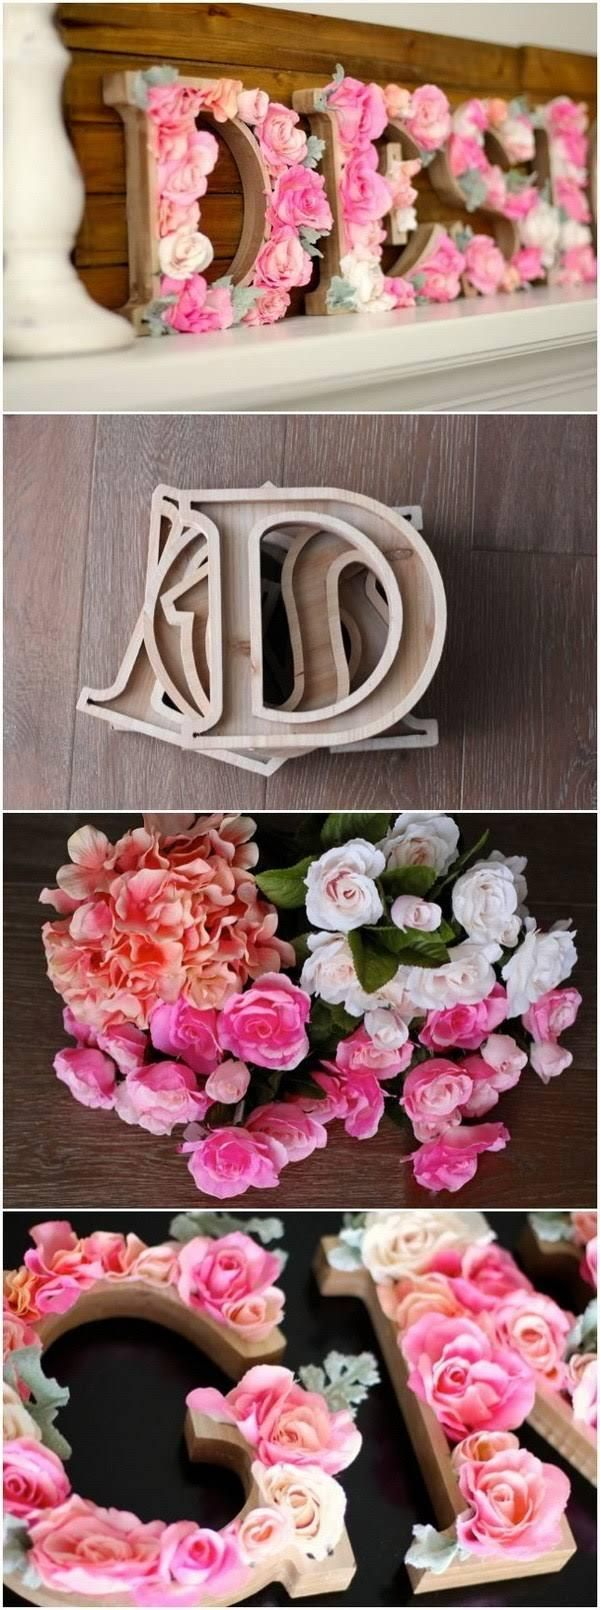 Best 25 Rustic Letters Ideas On Pinterest Letters With Flowers Girls Flower Bedroom And